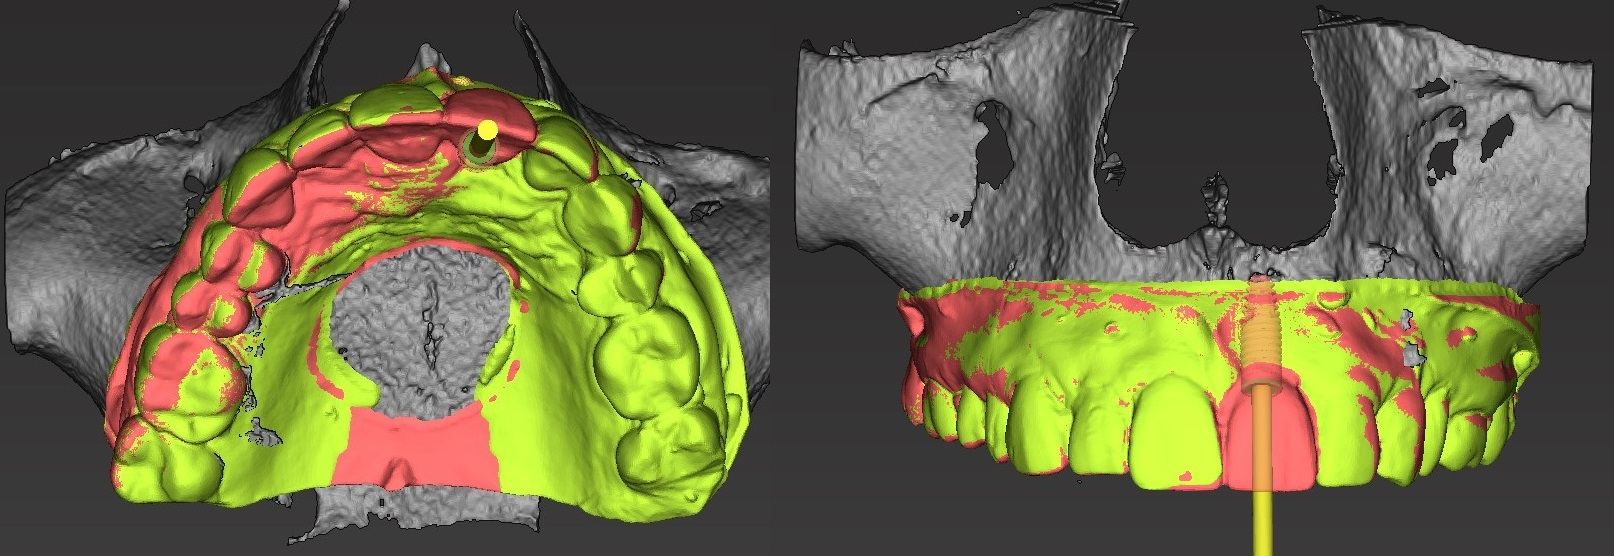 Figure 2b; Implant placement proposal relative to desired tooth position with digitized model replaceing tooth #9.